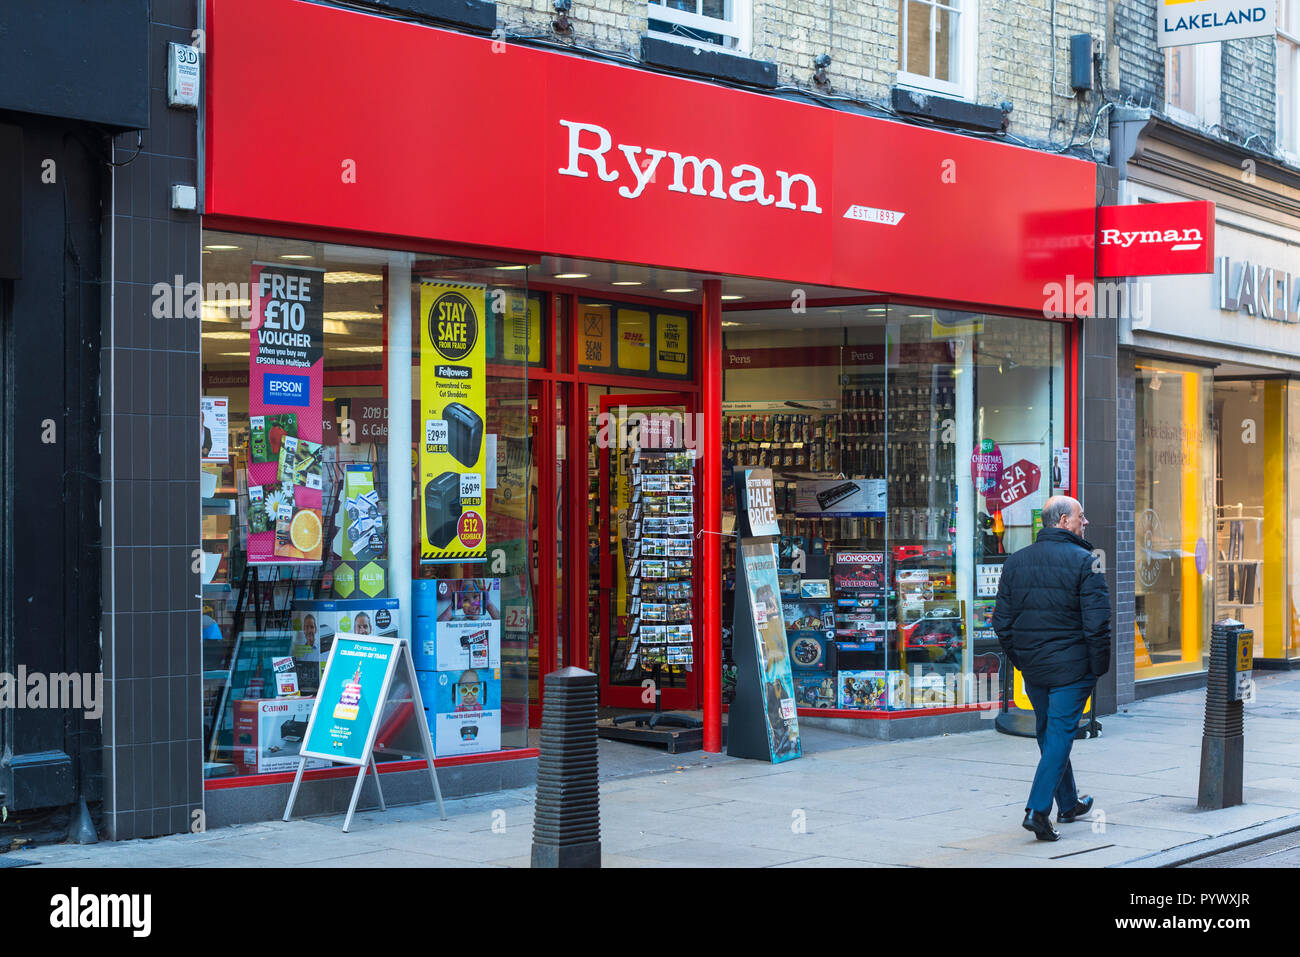 Rymans store specialising in stationary and office equipment. Store shown is in Cambridge, UK. - Stock Image